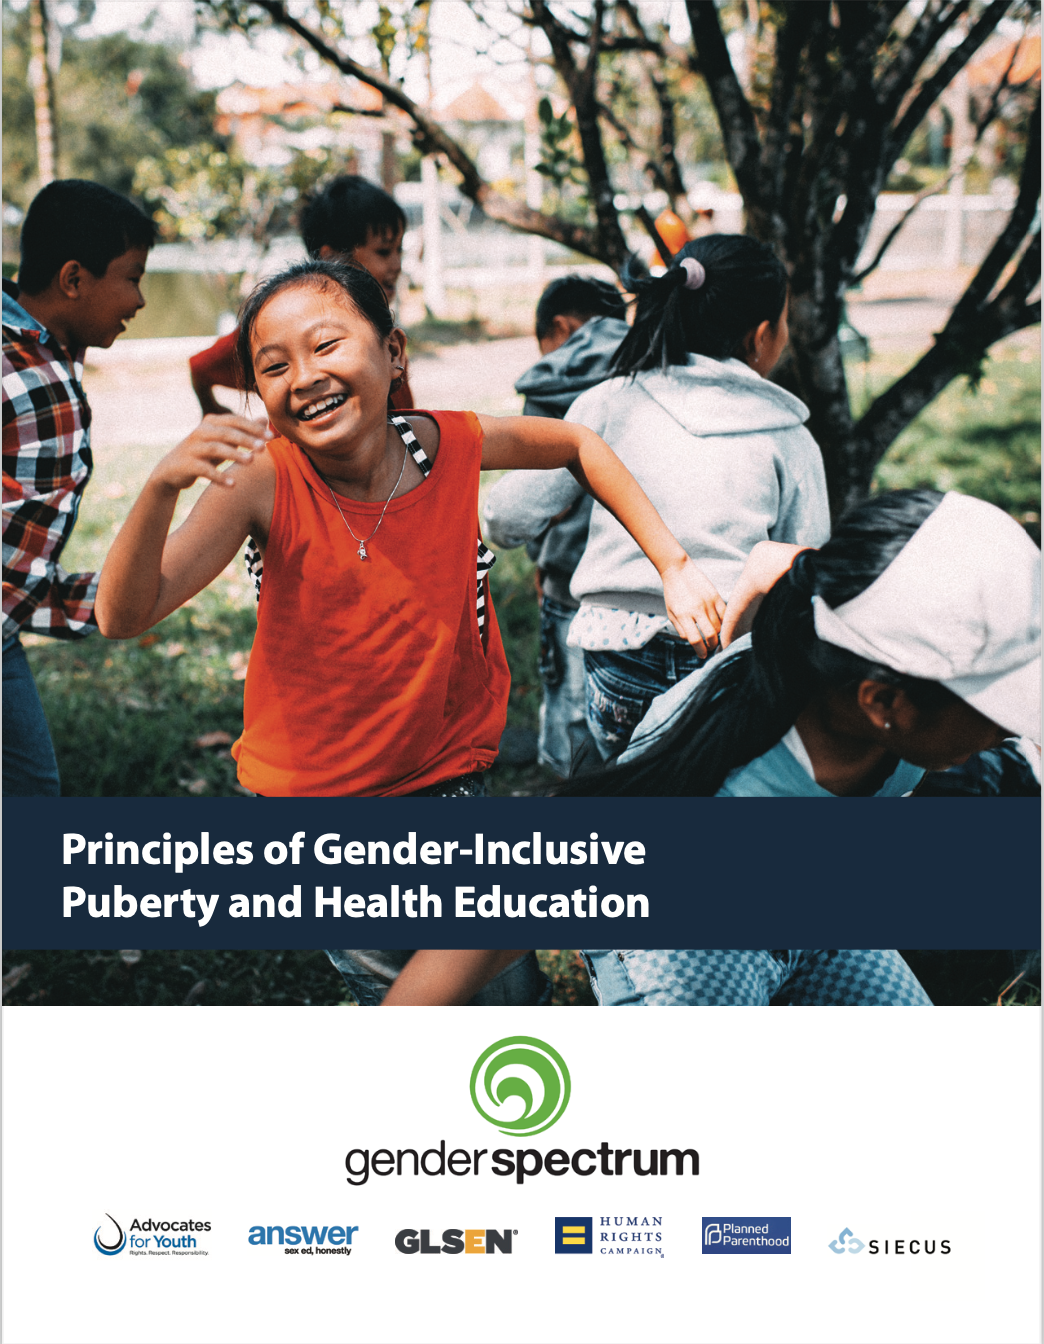 Gender Spectrum Principles of Gender-Inc